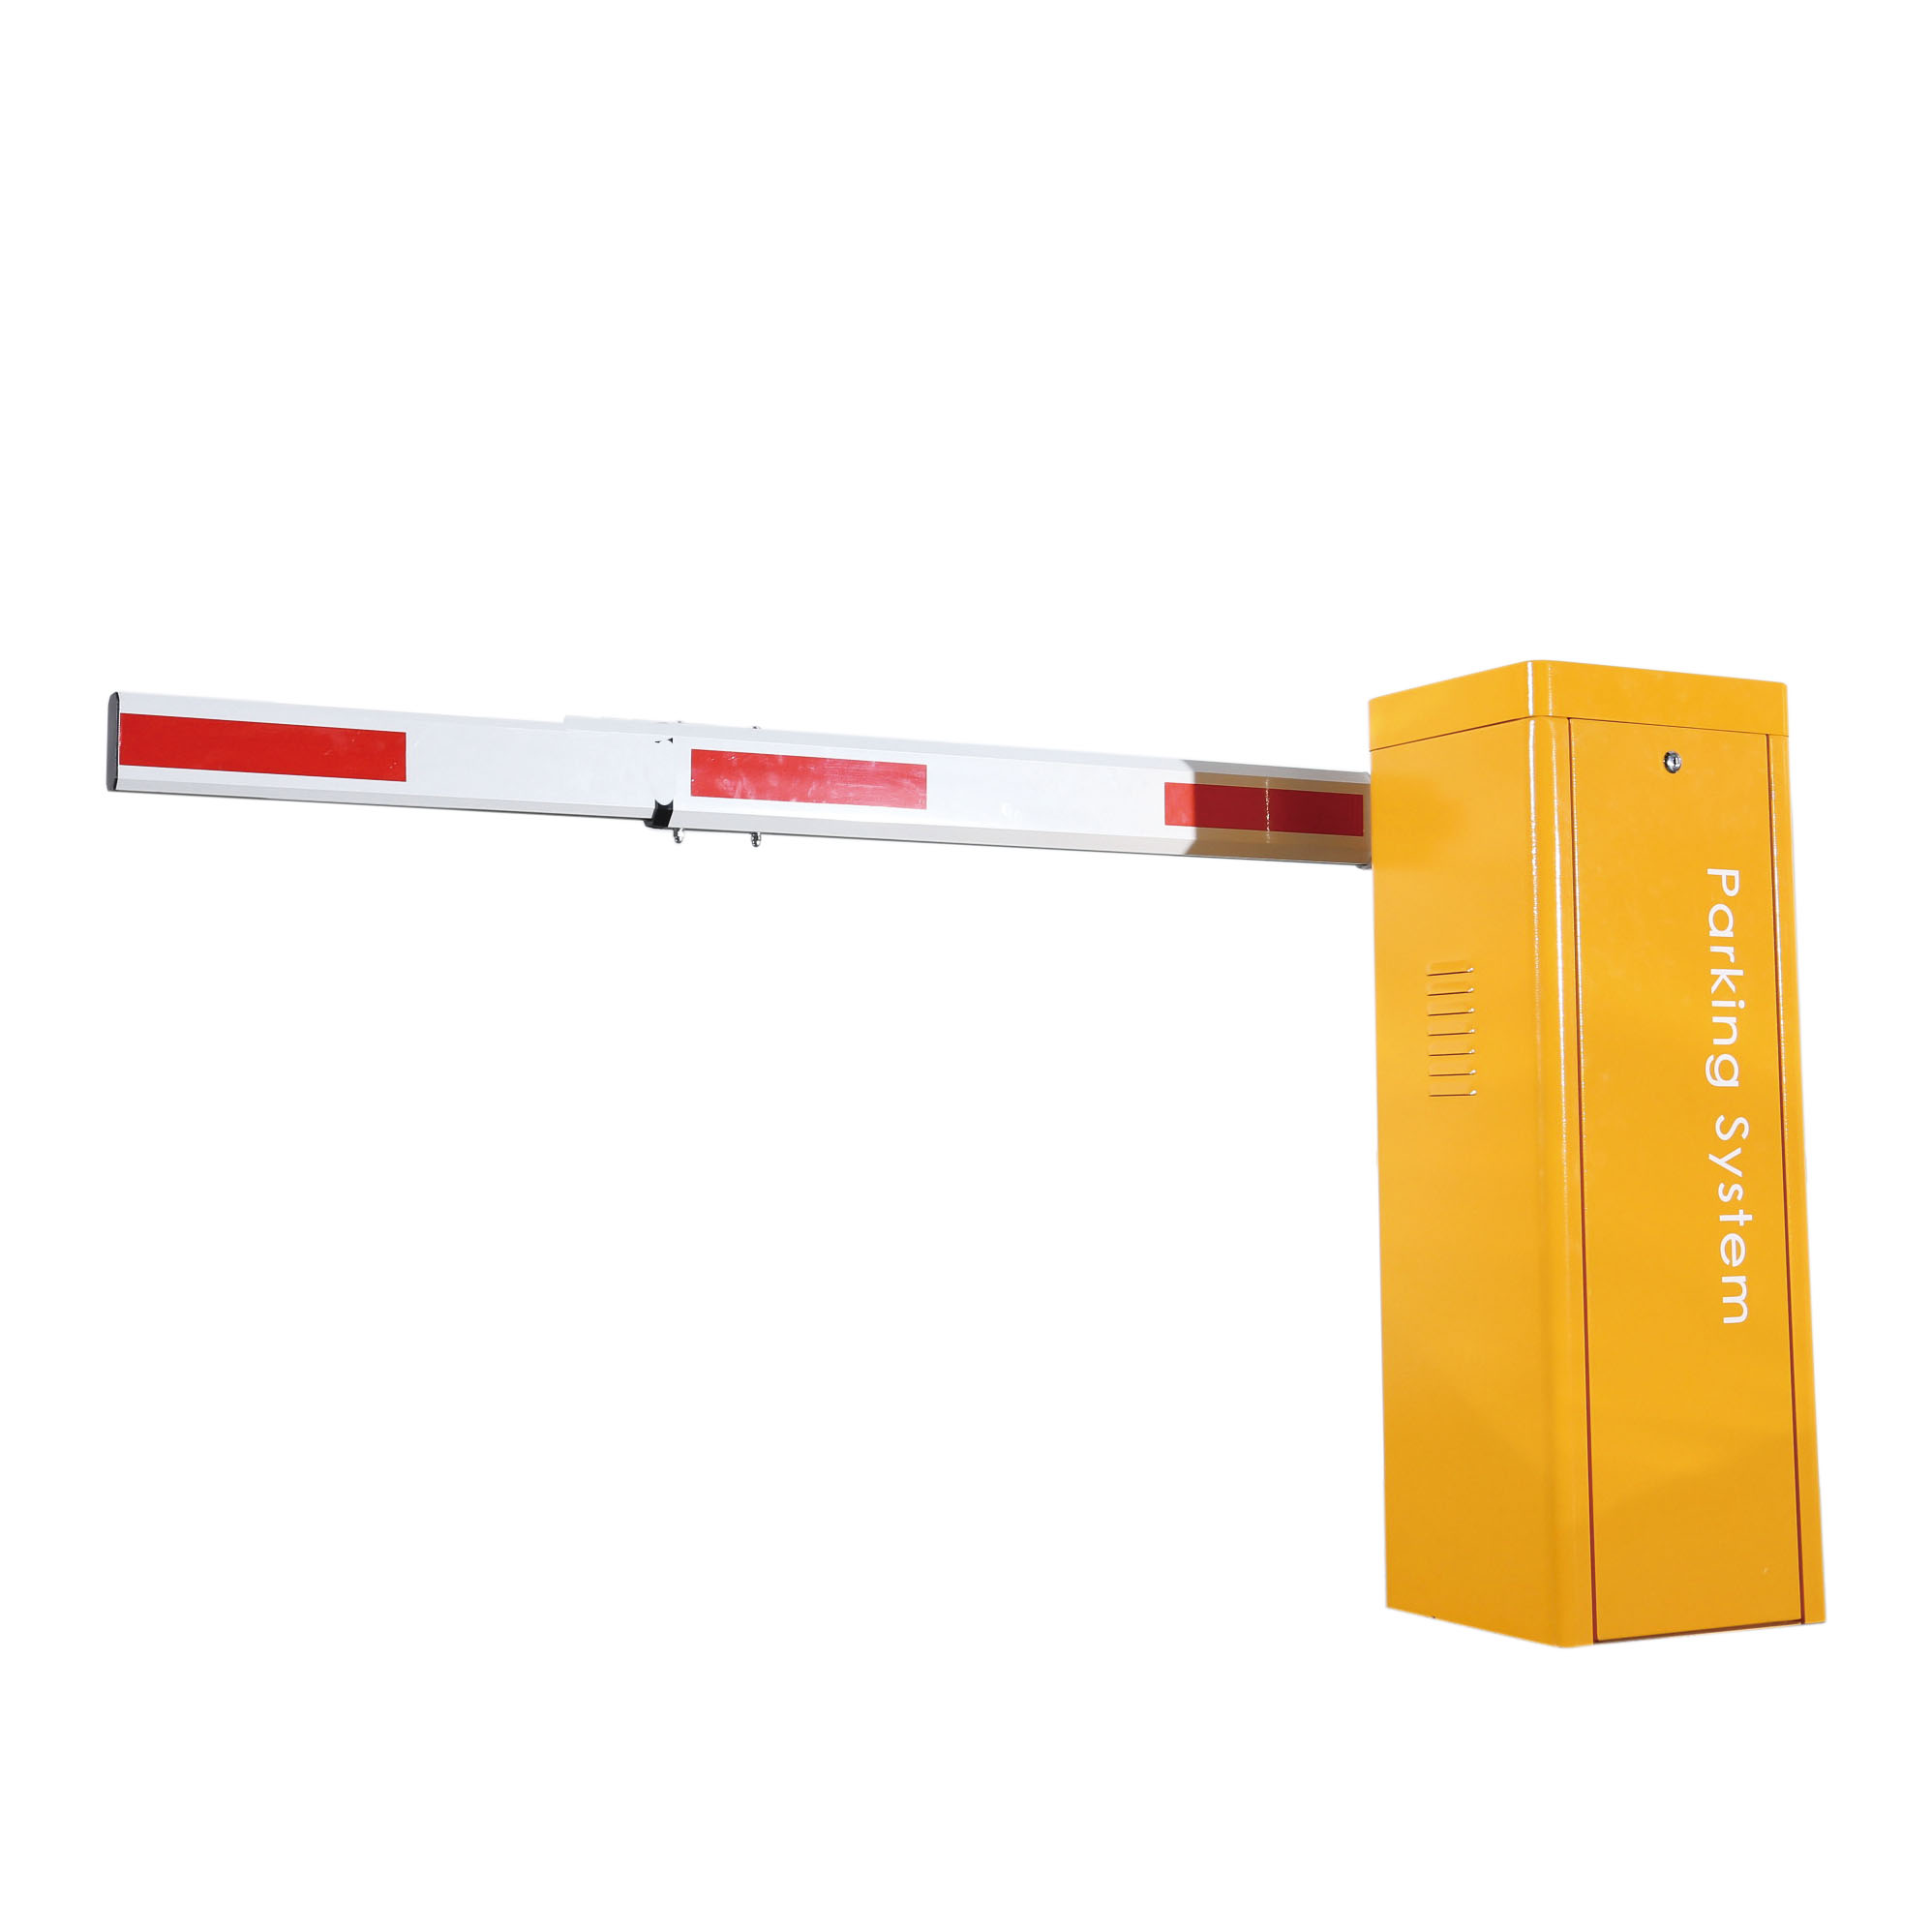 Automatic Electric Boom Barrier Gate Car Parking Barrier 2 Remote Control With 3s Opening Time 4.5m Telescopic Arm Barrier Gate